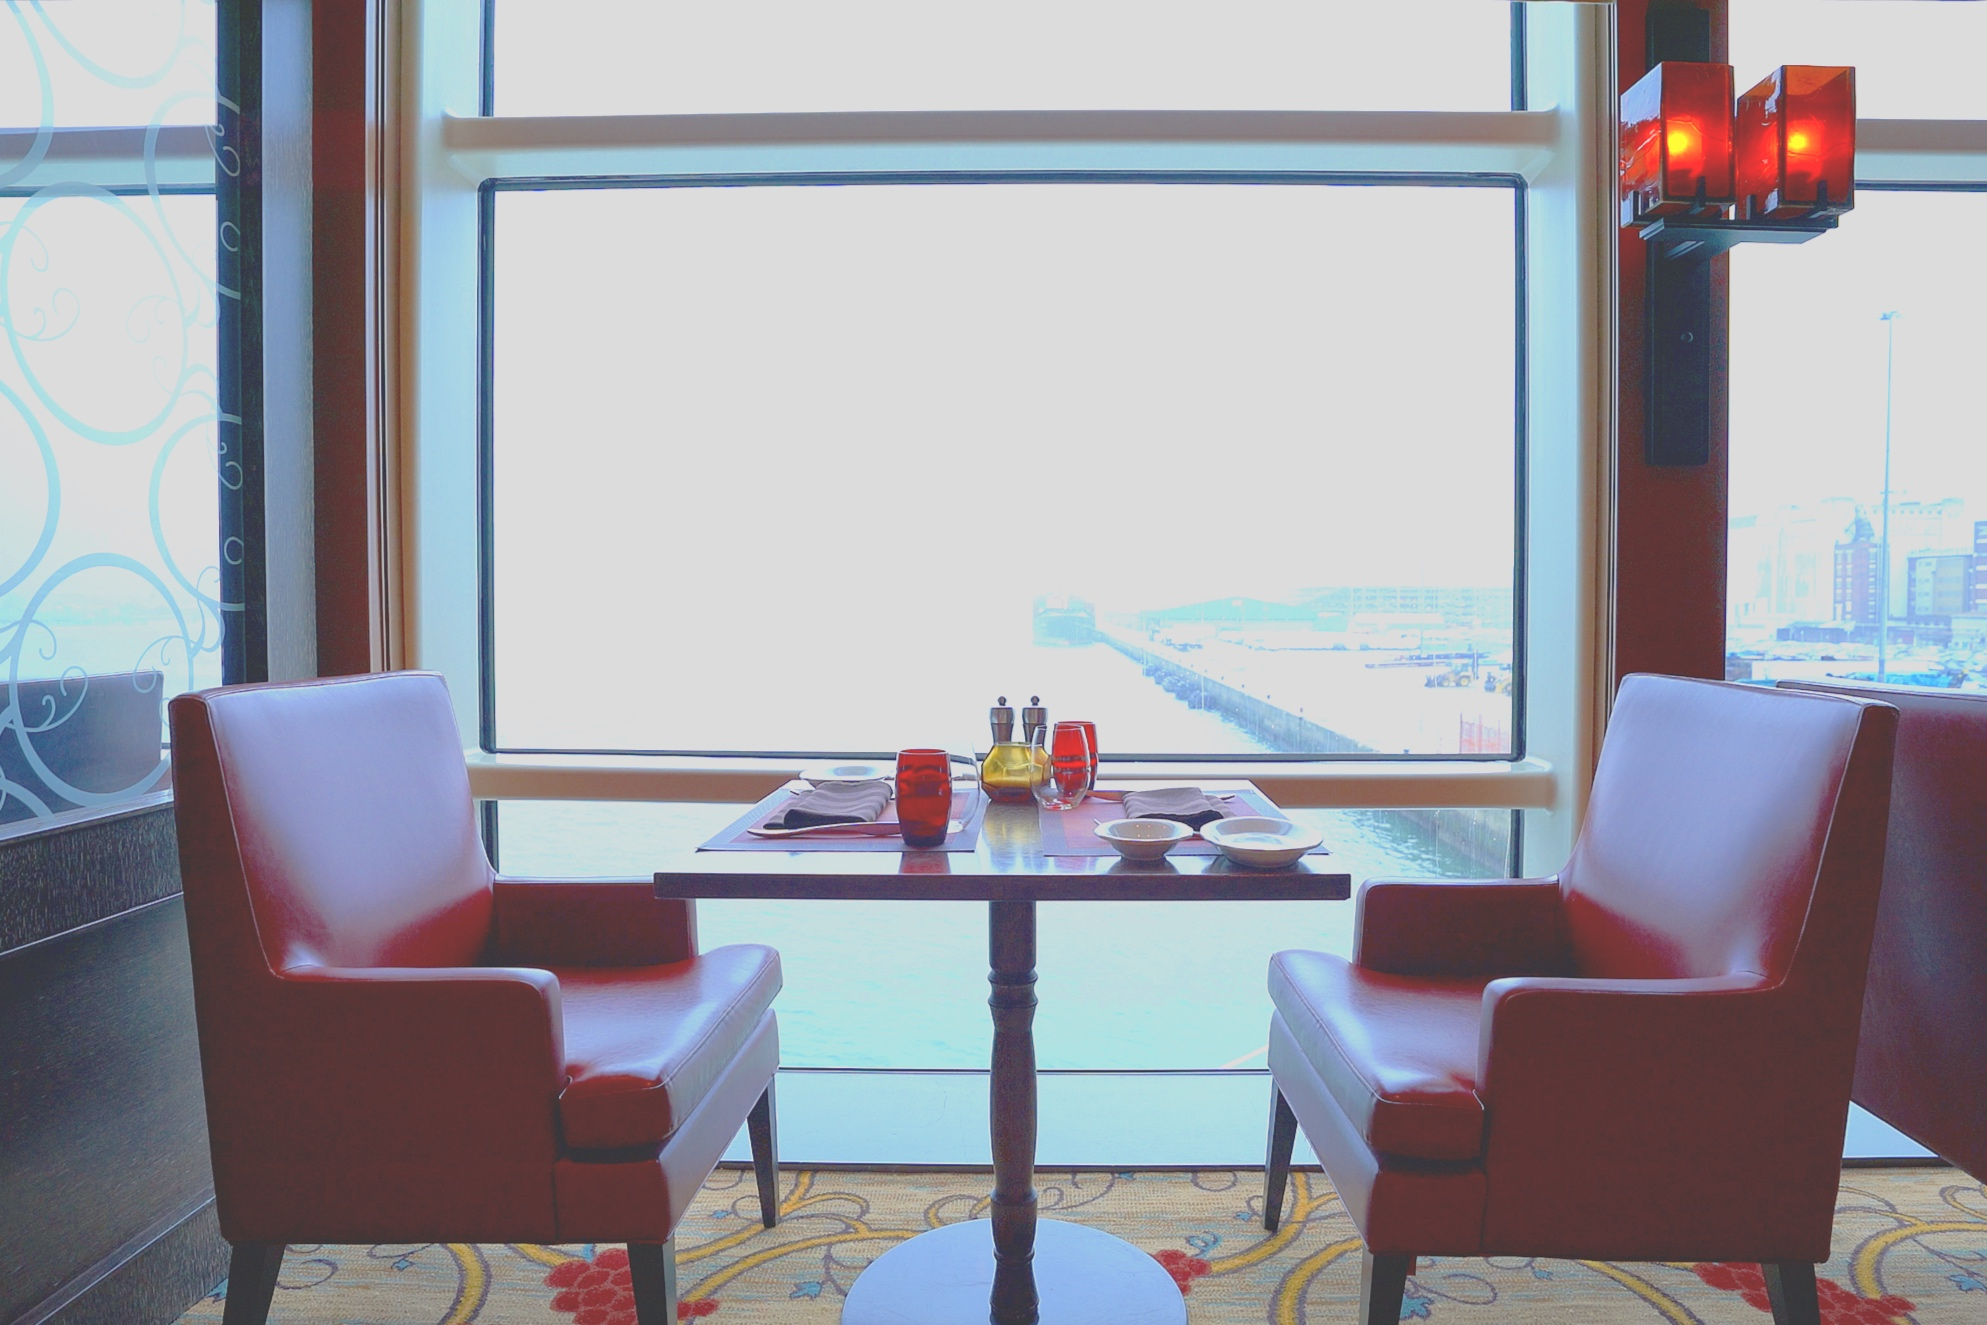 Tuscan Grille is situated at the rear of the ship with romantic wake views.